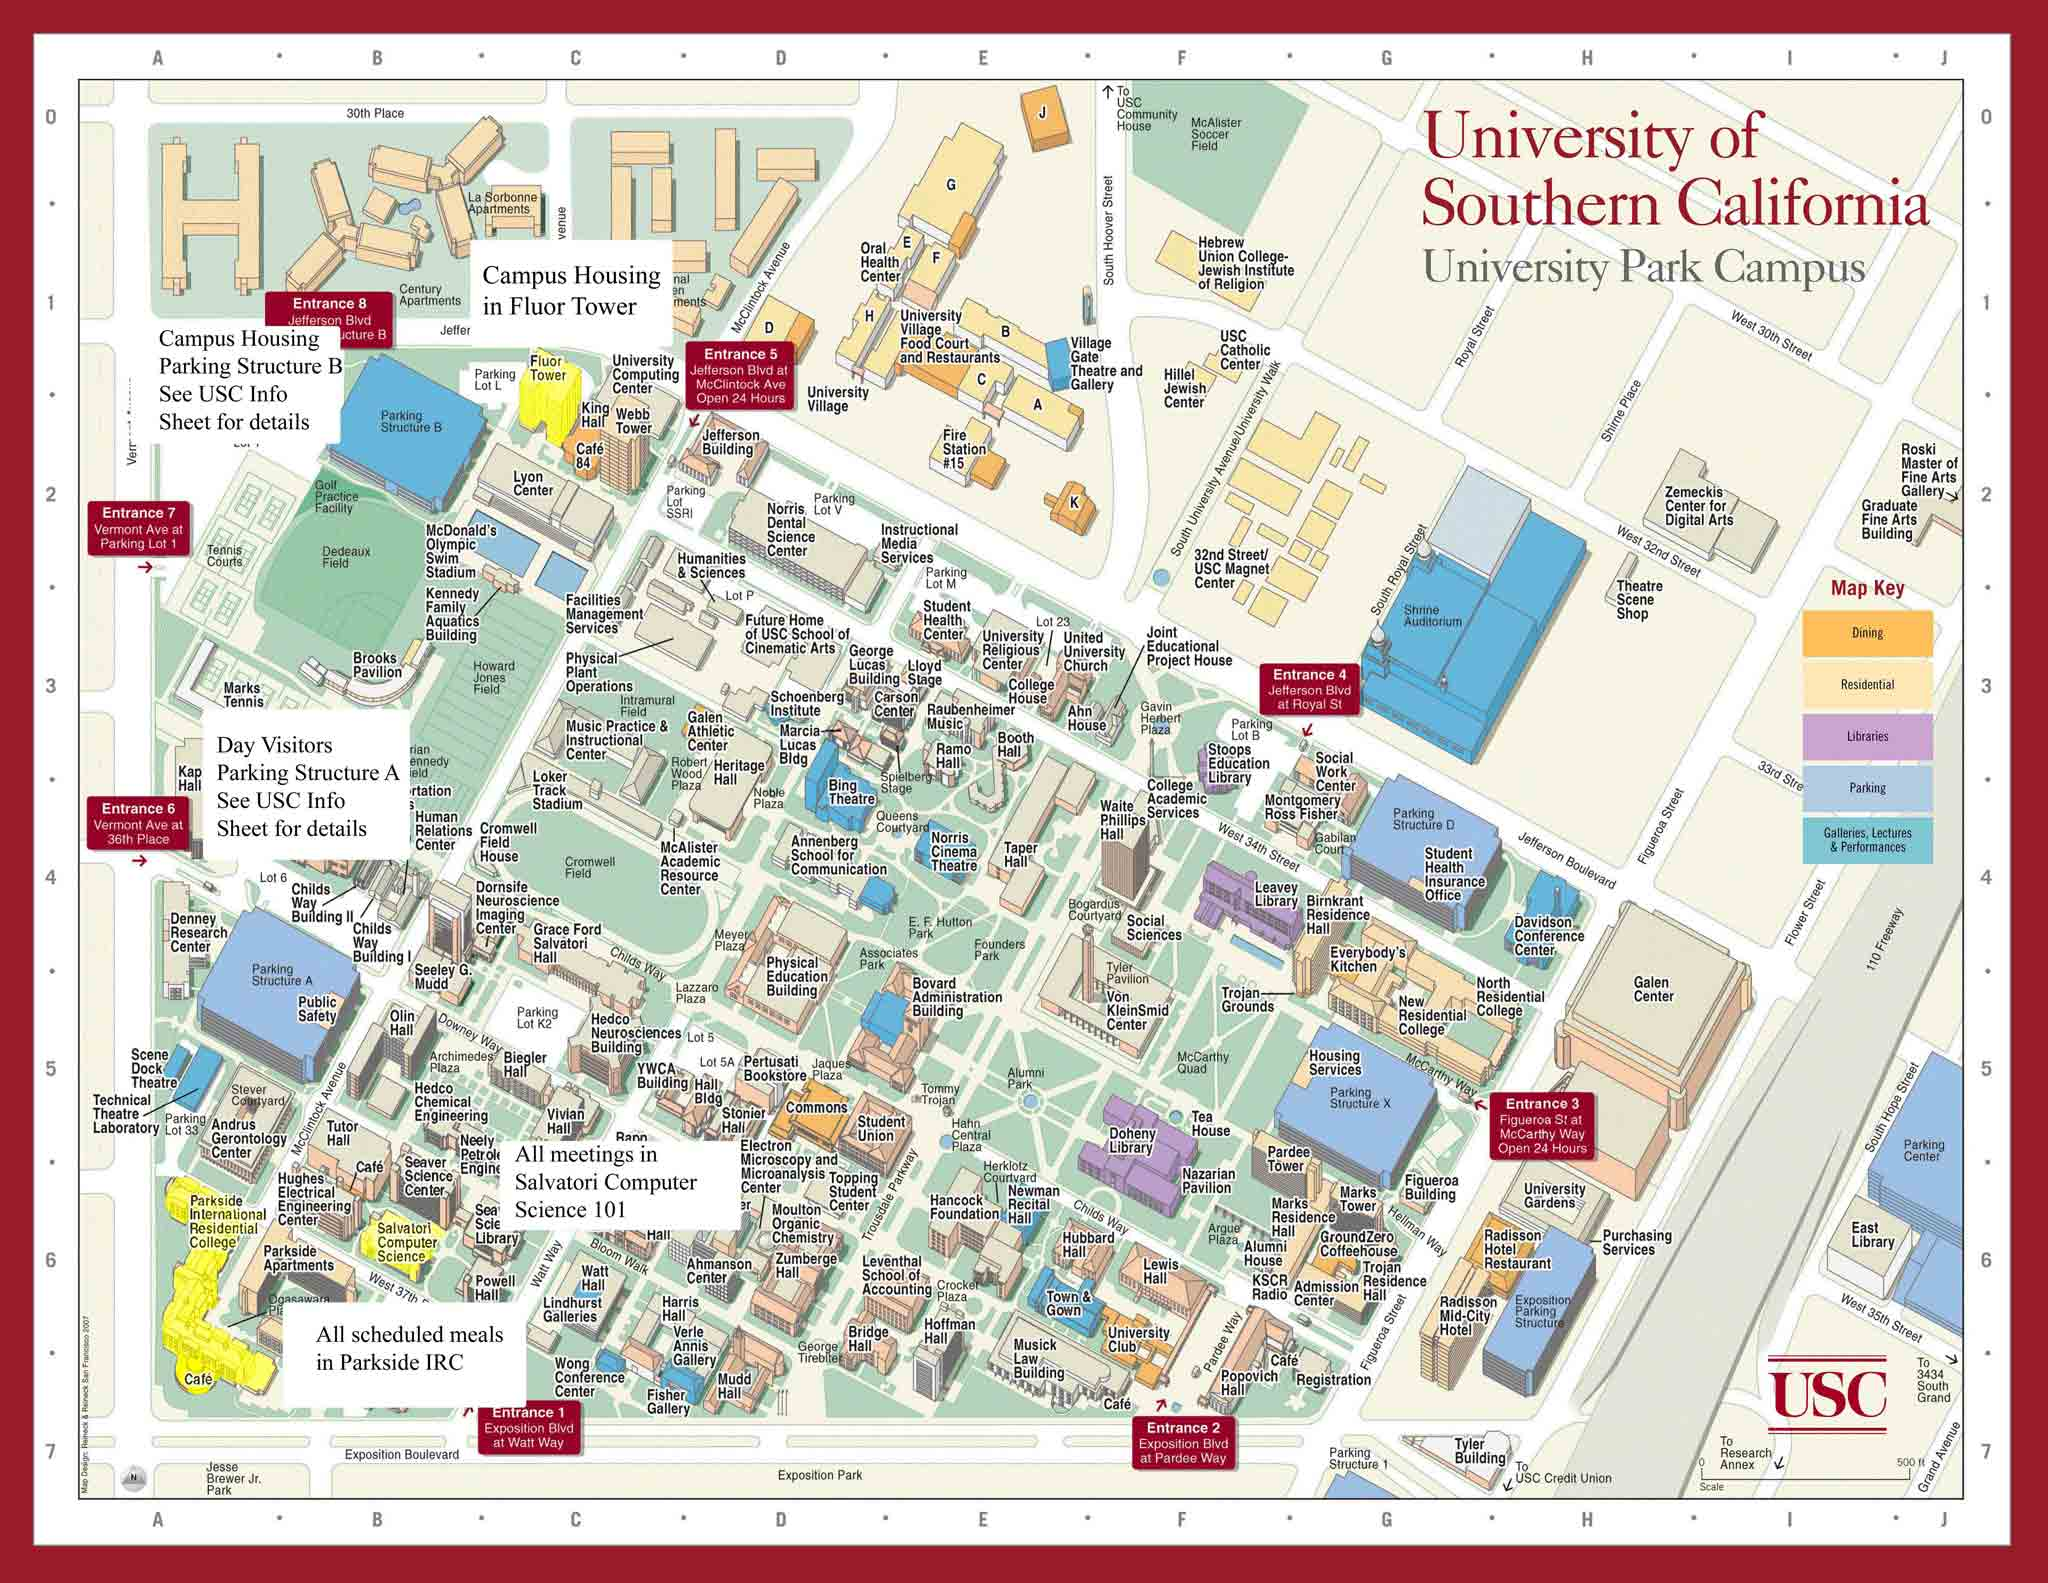 usc campus map  university of southern california • mappery -